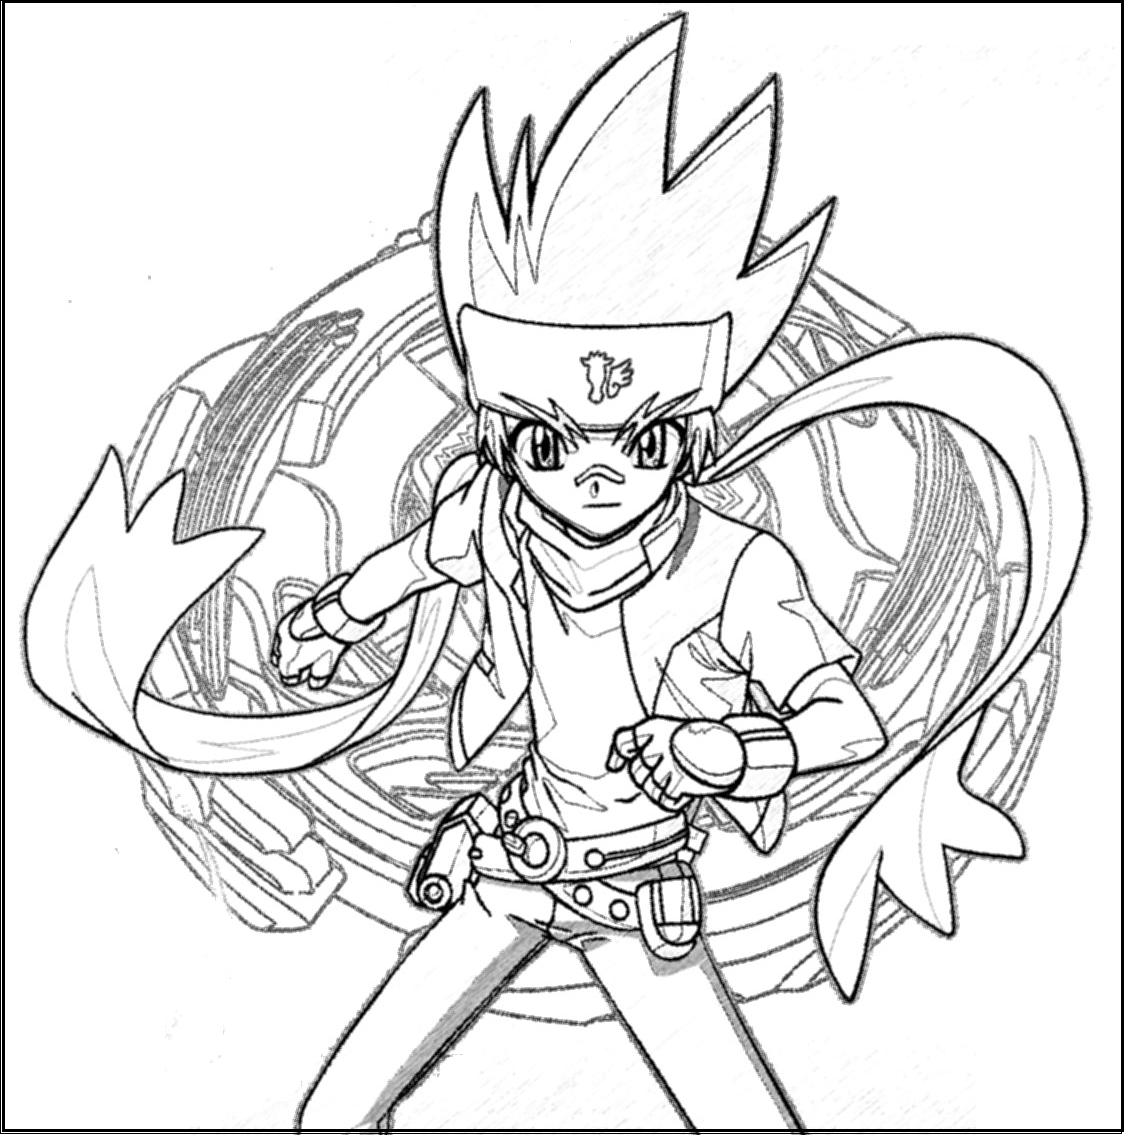 beyblade characters coloring pages beyblade coloring pages character beyblade coloring pages characters coloring pages beyblade